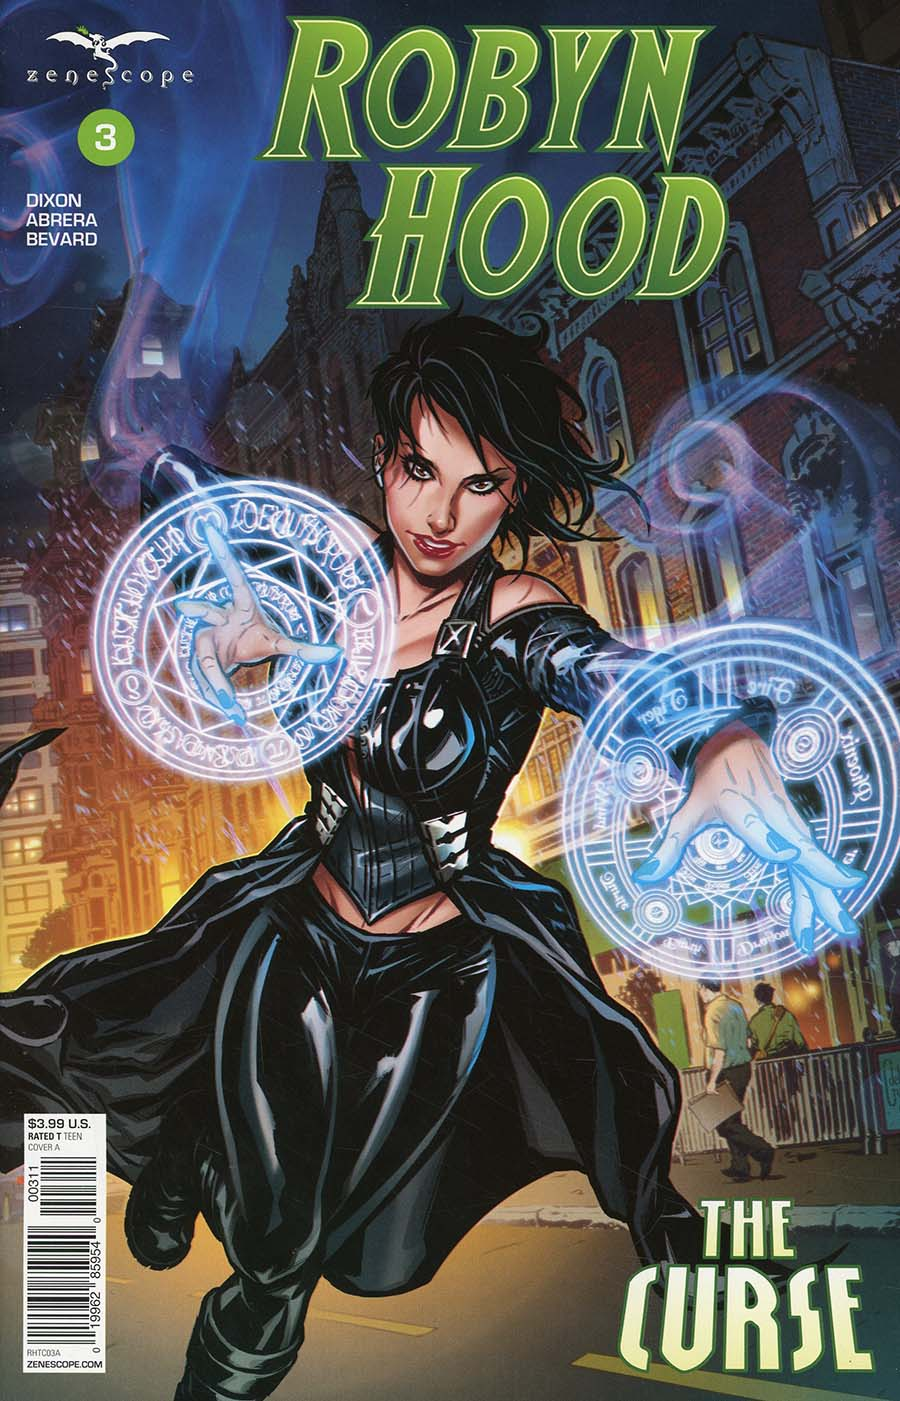 Grimm Fairy Tales Presents Robyn Hood The Curse #3 Cover A Riveiro